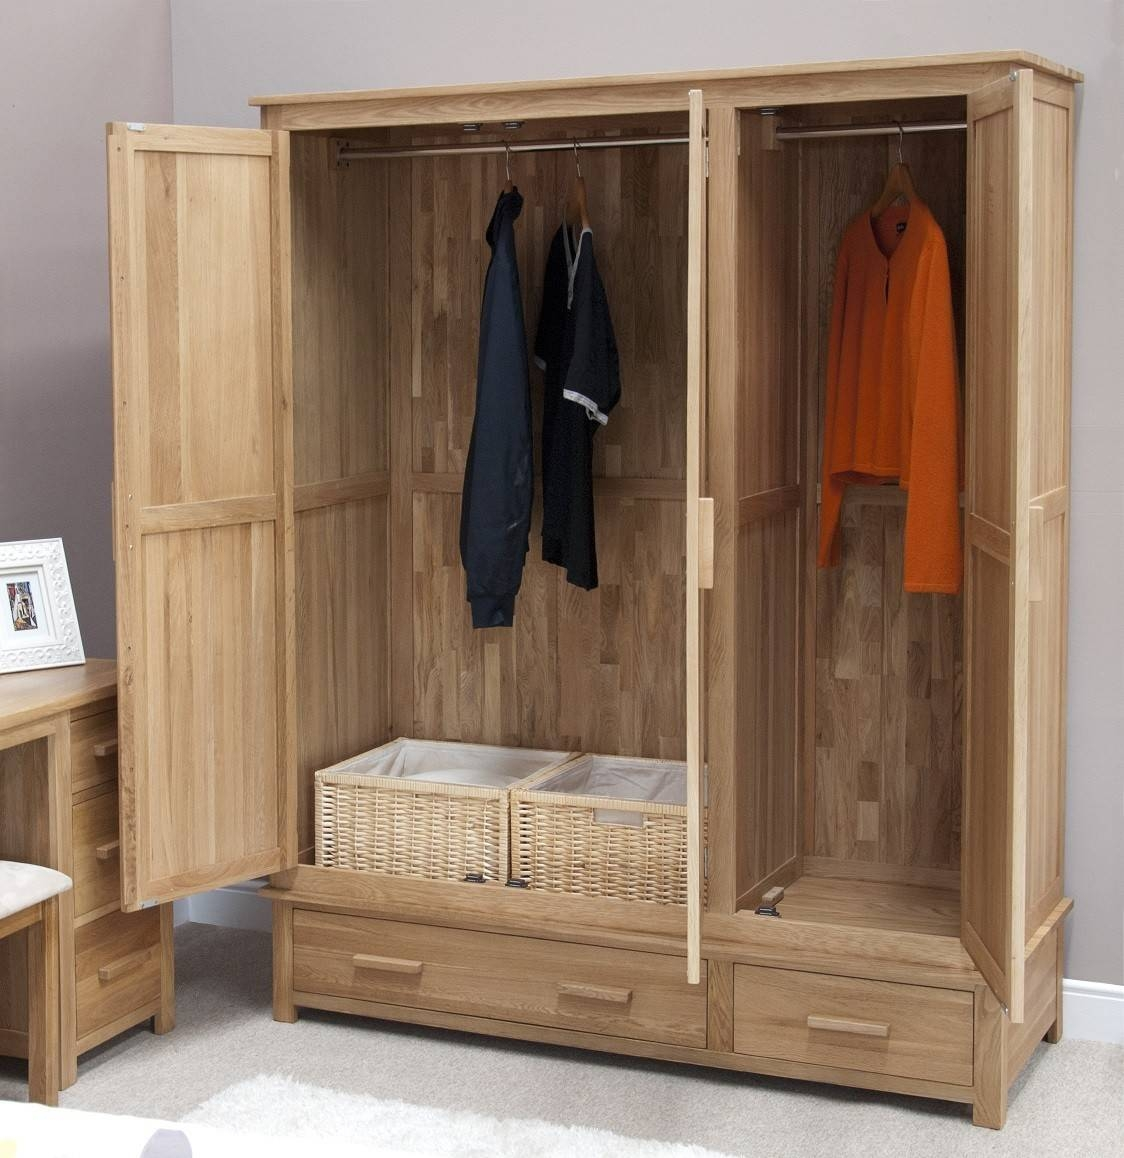 Opus Solid Oak 3 Door Triple Wardrobe | Oak Furniture Uk regarding Large Oak Wardrobes (Image 7 of 15)